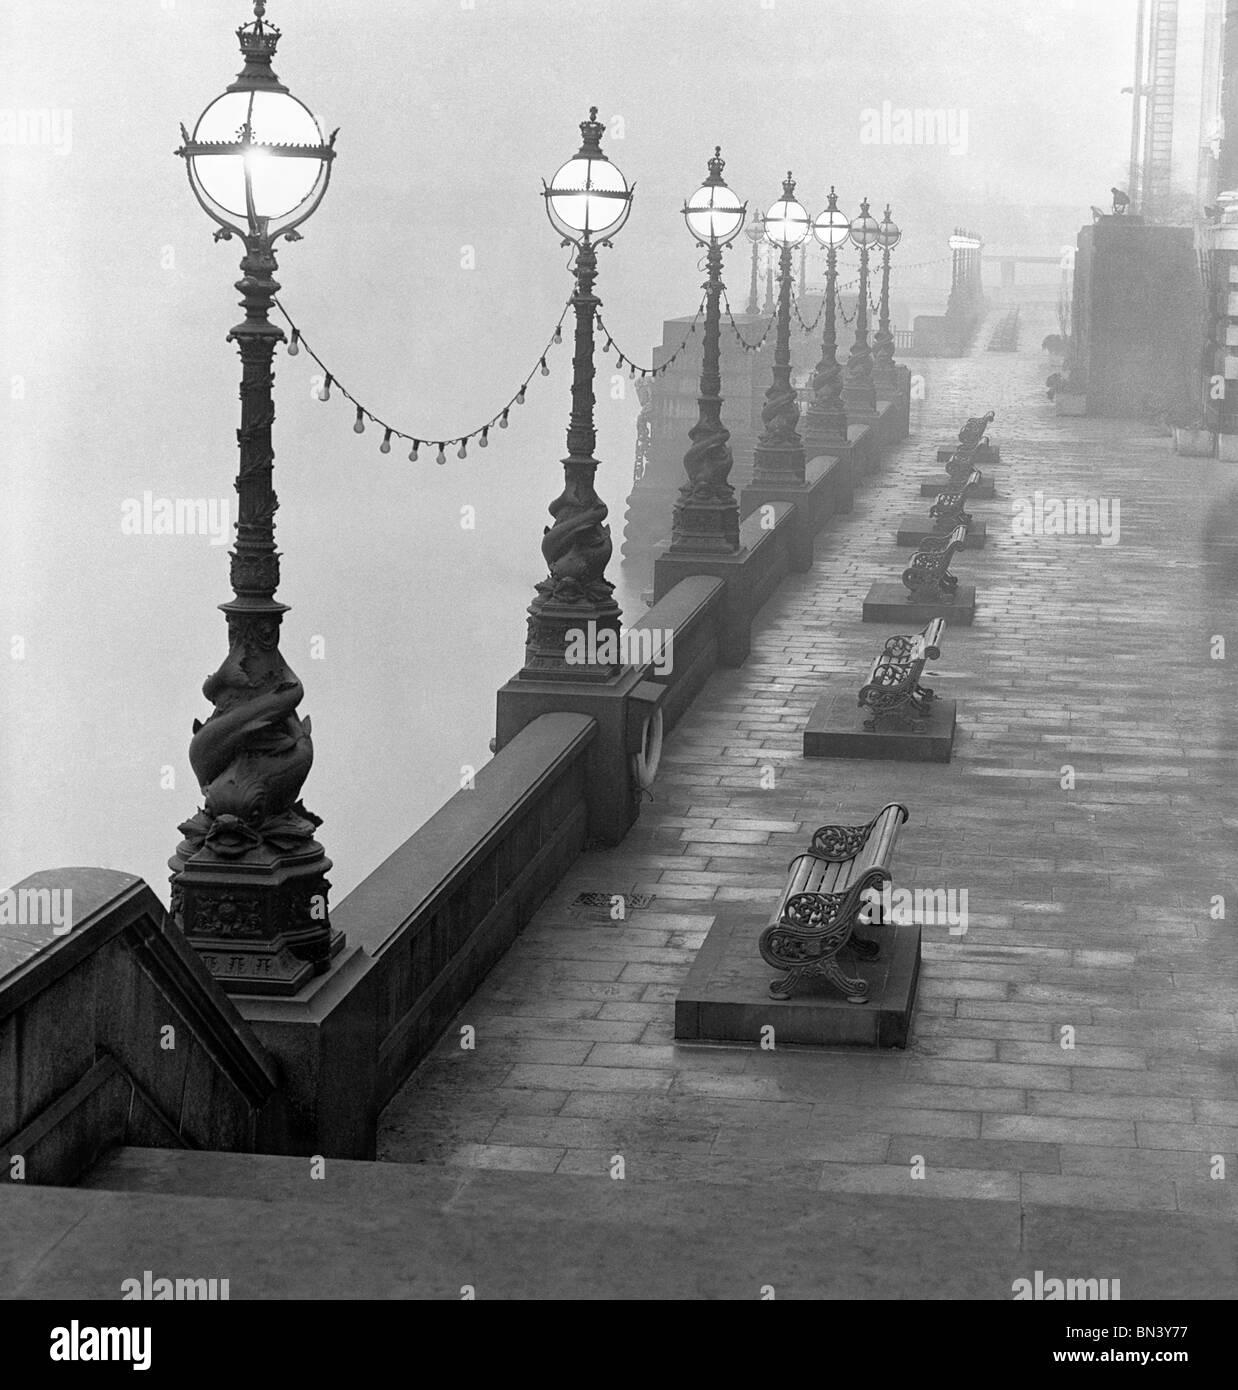 Lamp posts and Benches by the River Thames. Photo John Gay (1909-1999). London, England, c.1940 - Stock Image